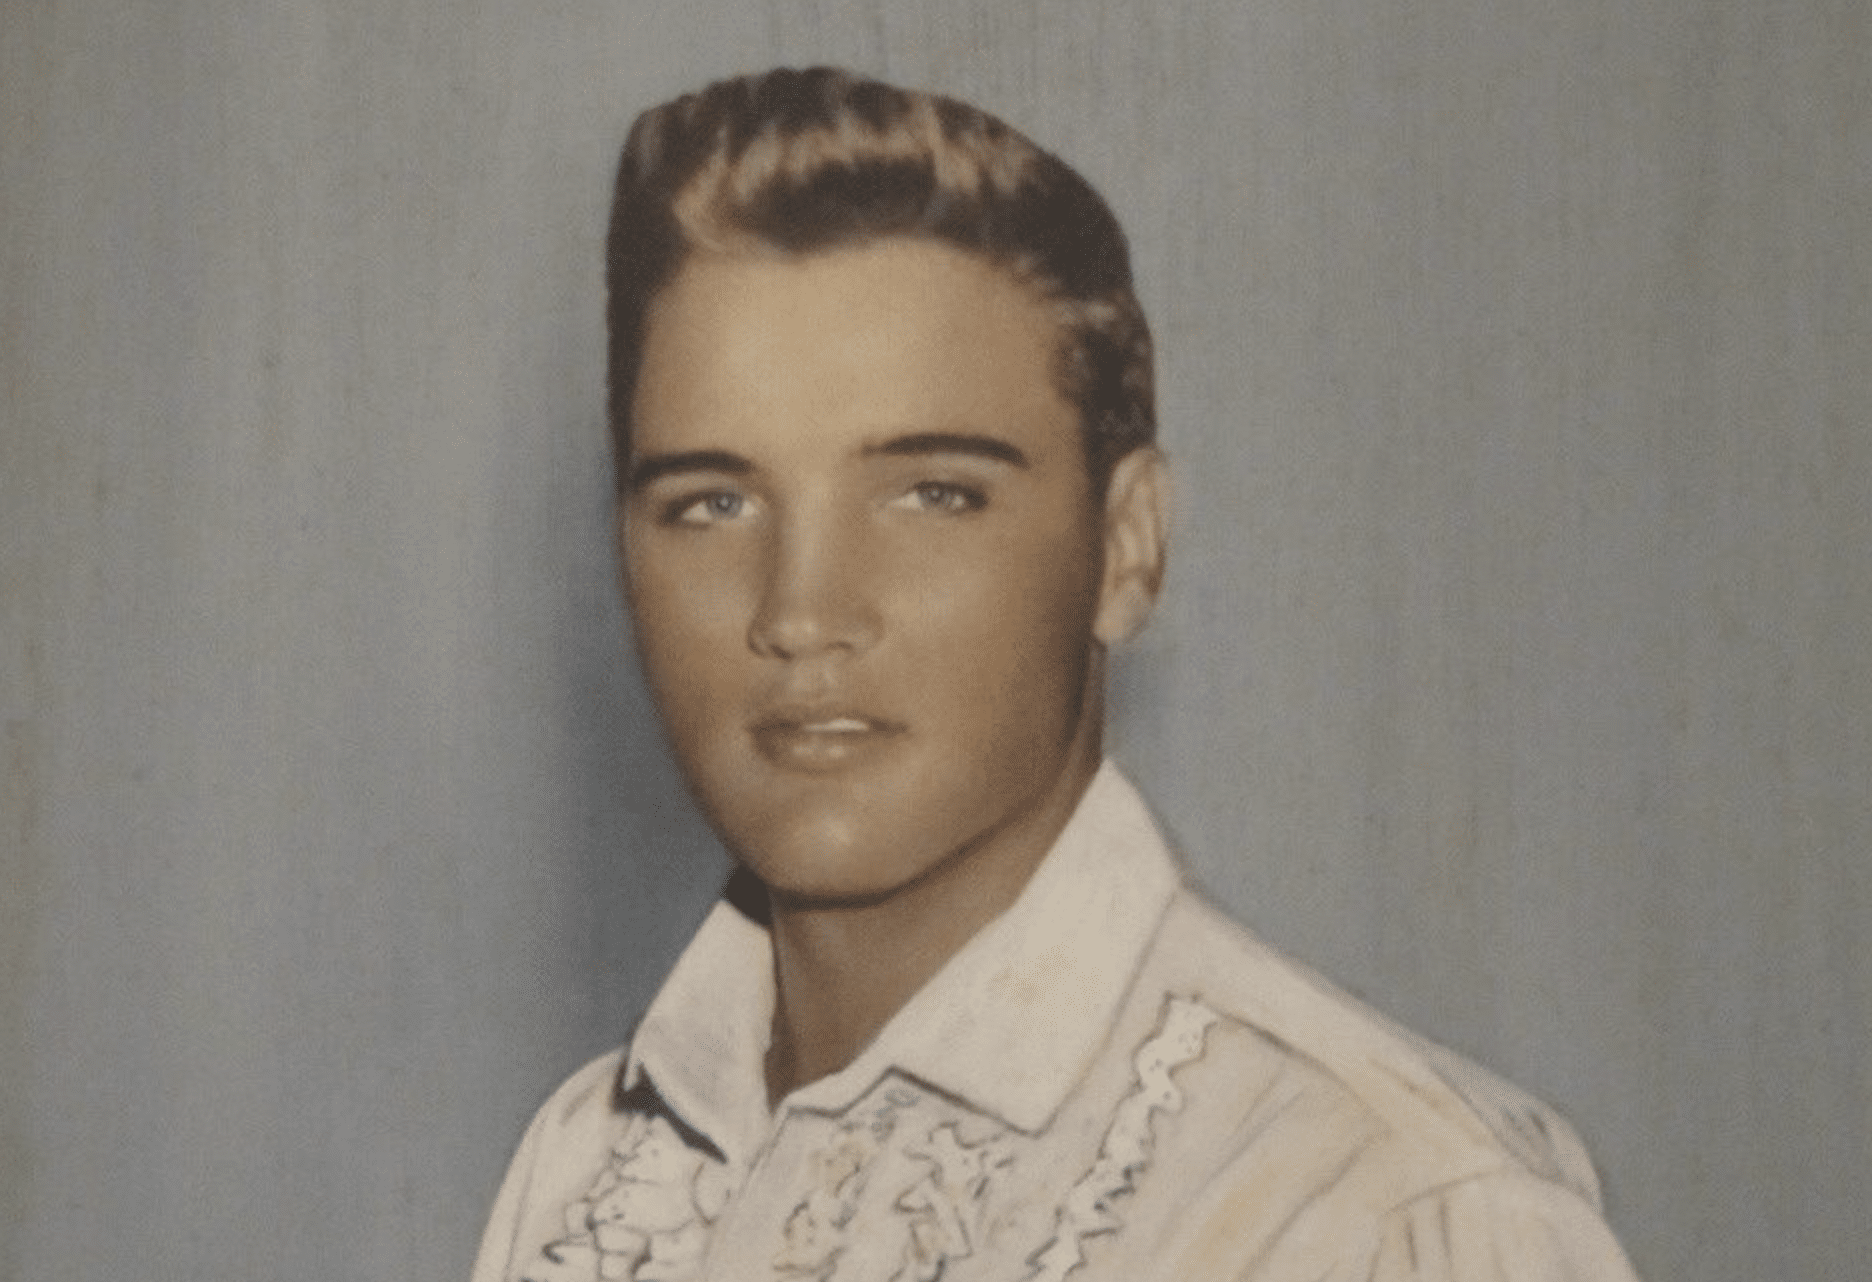 Elvis with his natural blonde hair